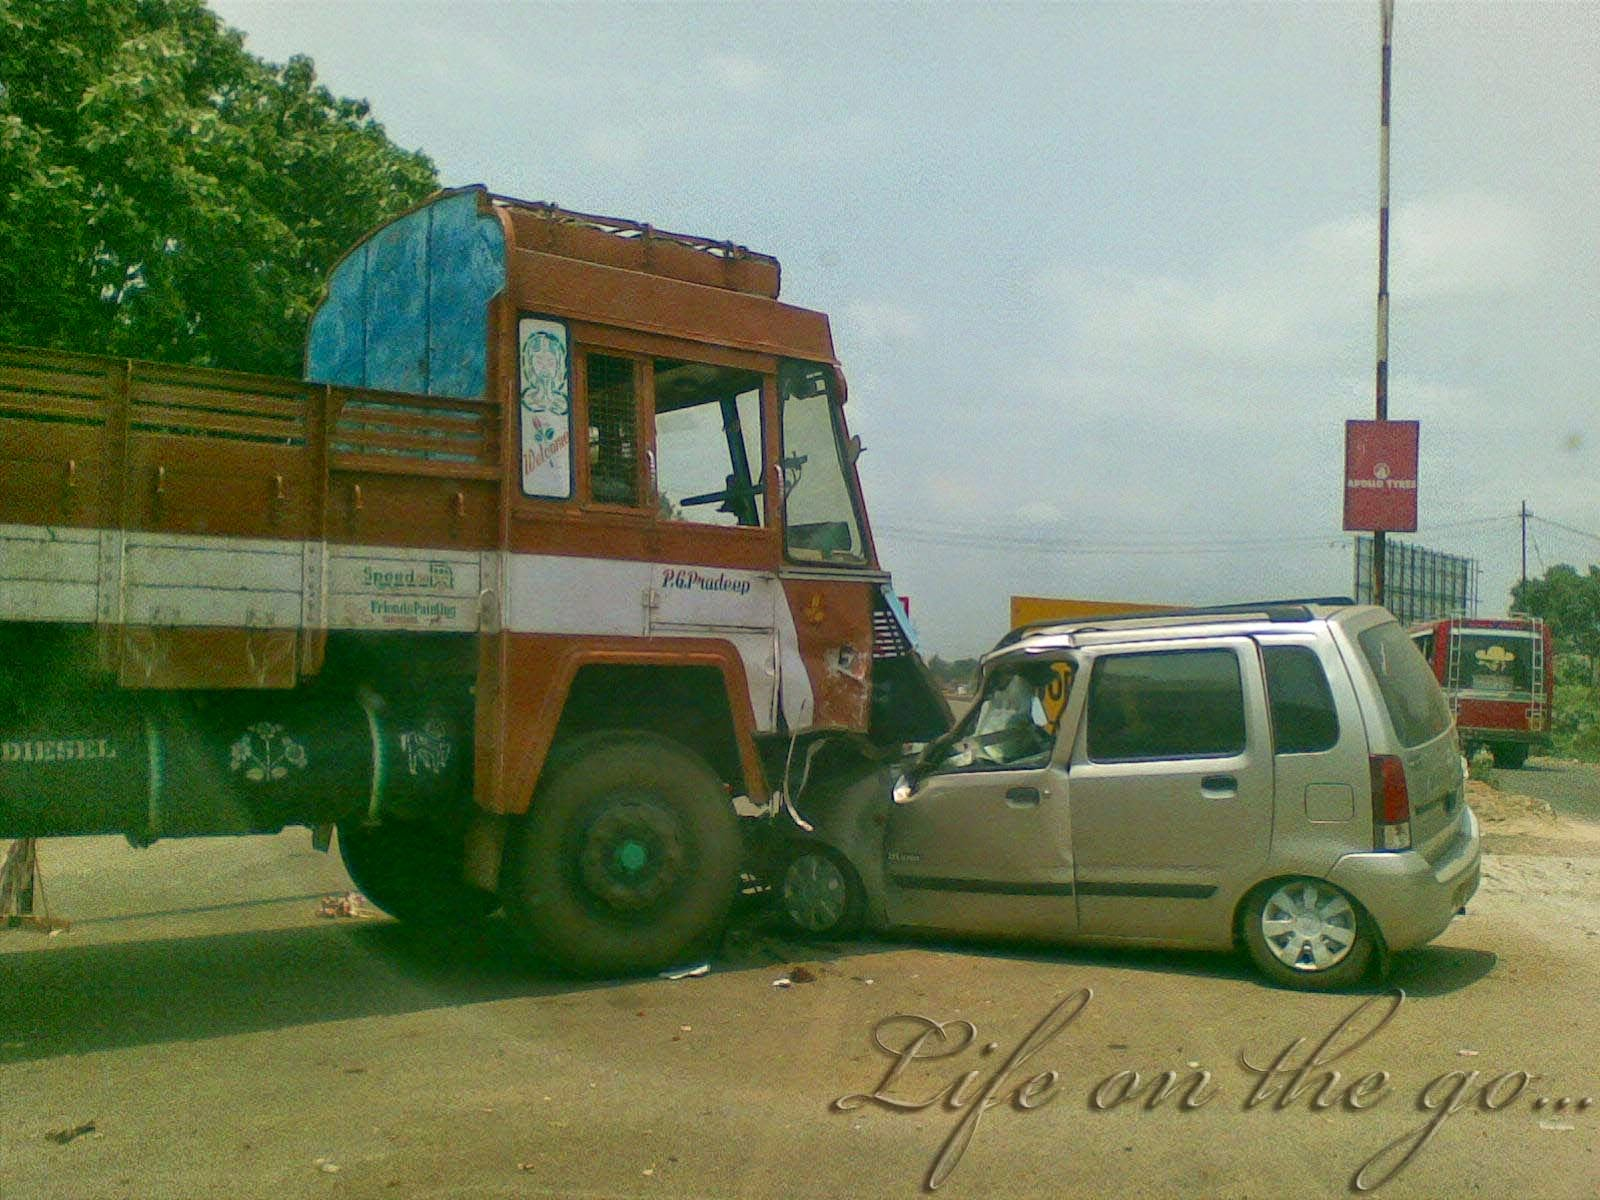 Mungpoo Car met accident at Likhuveer